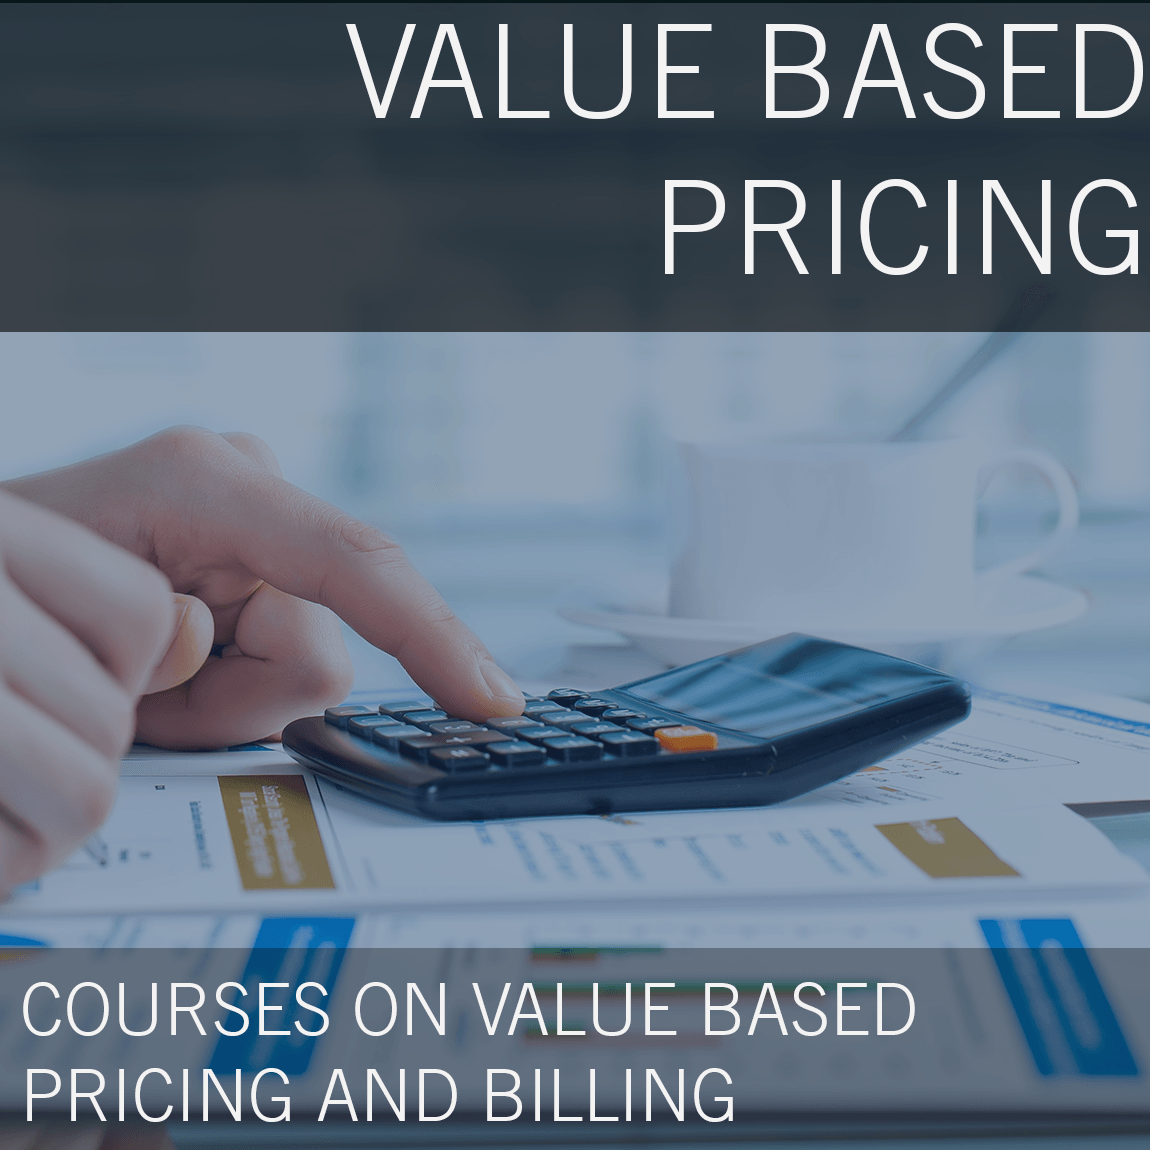 Valuepricingsquare